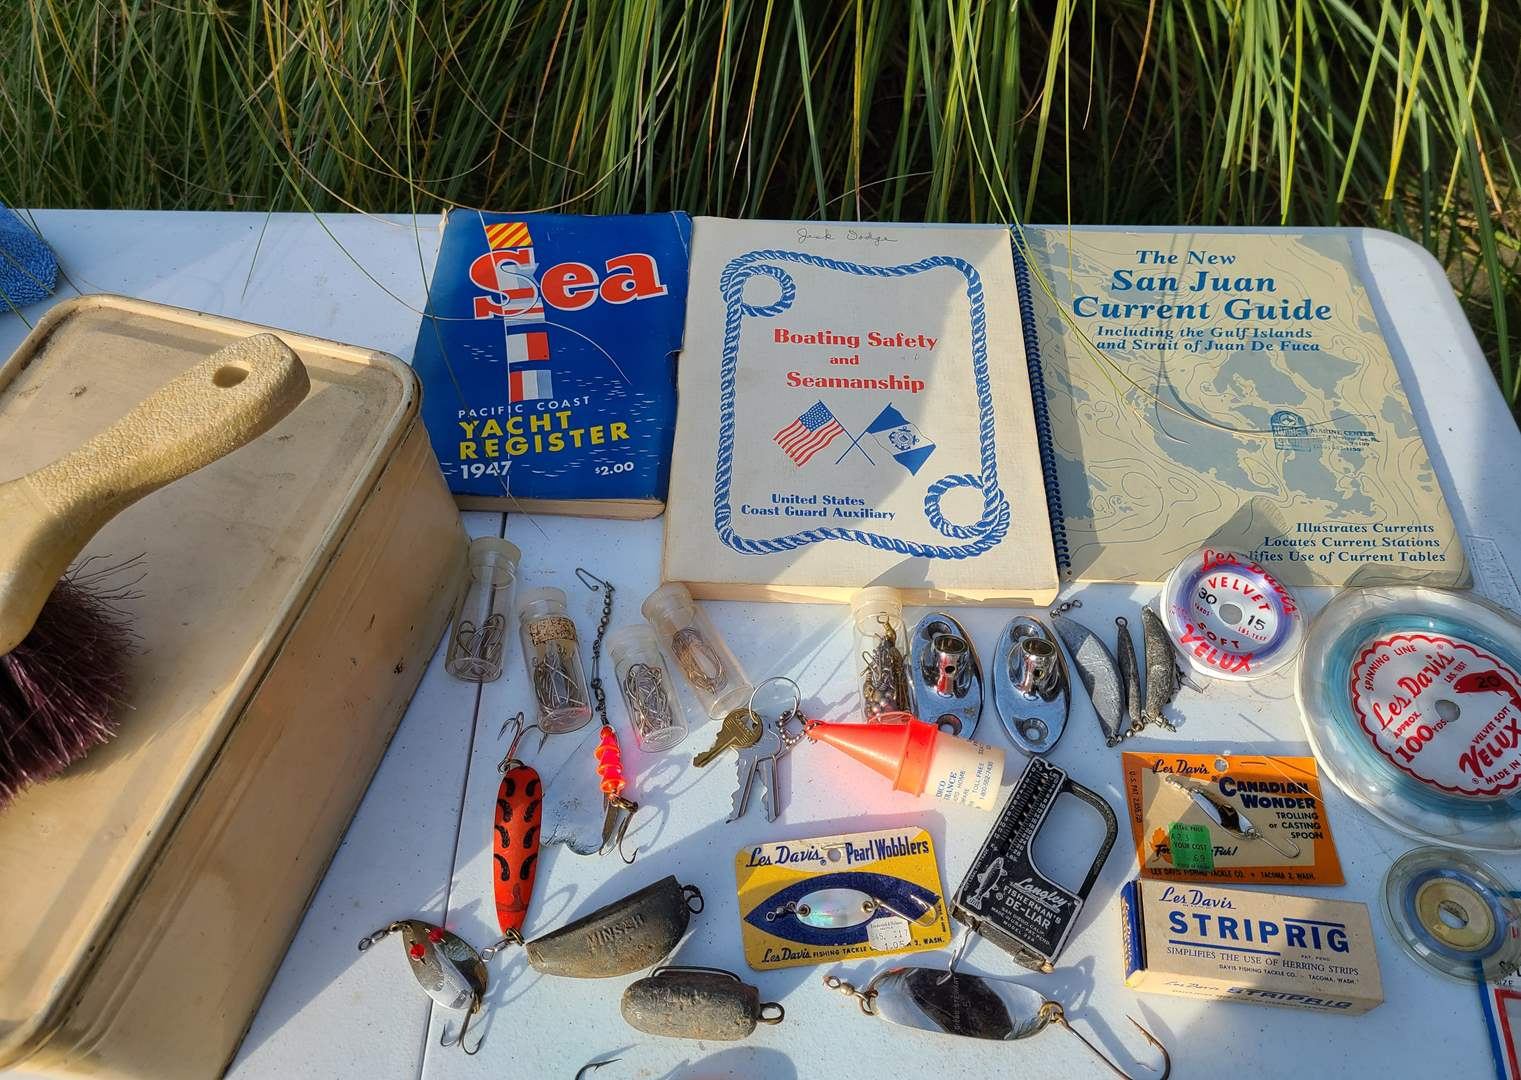 Lot # 26 - Boating / Fishing Lot * 1947 Pacific Coast Yacht Rigister * Fish Scale * Lures & Weights * San Juan Current Guide (main image)